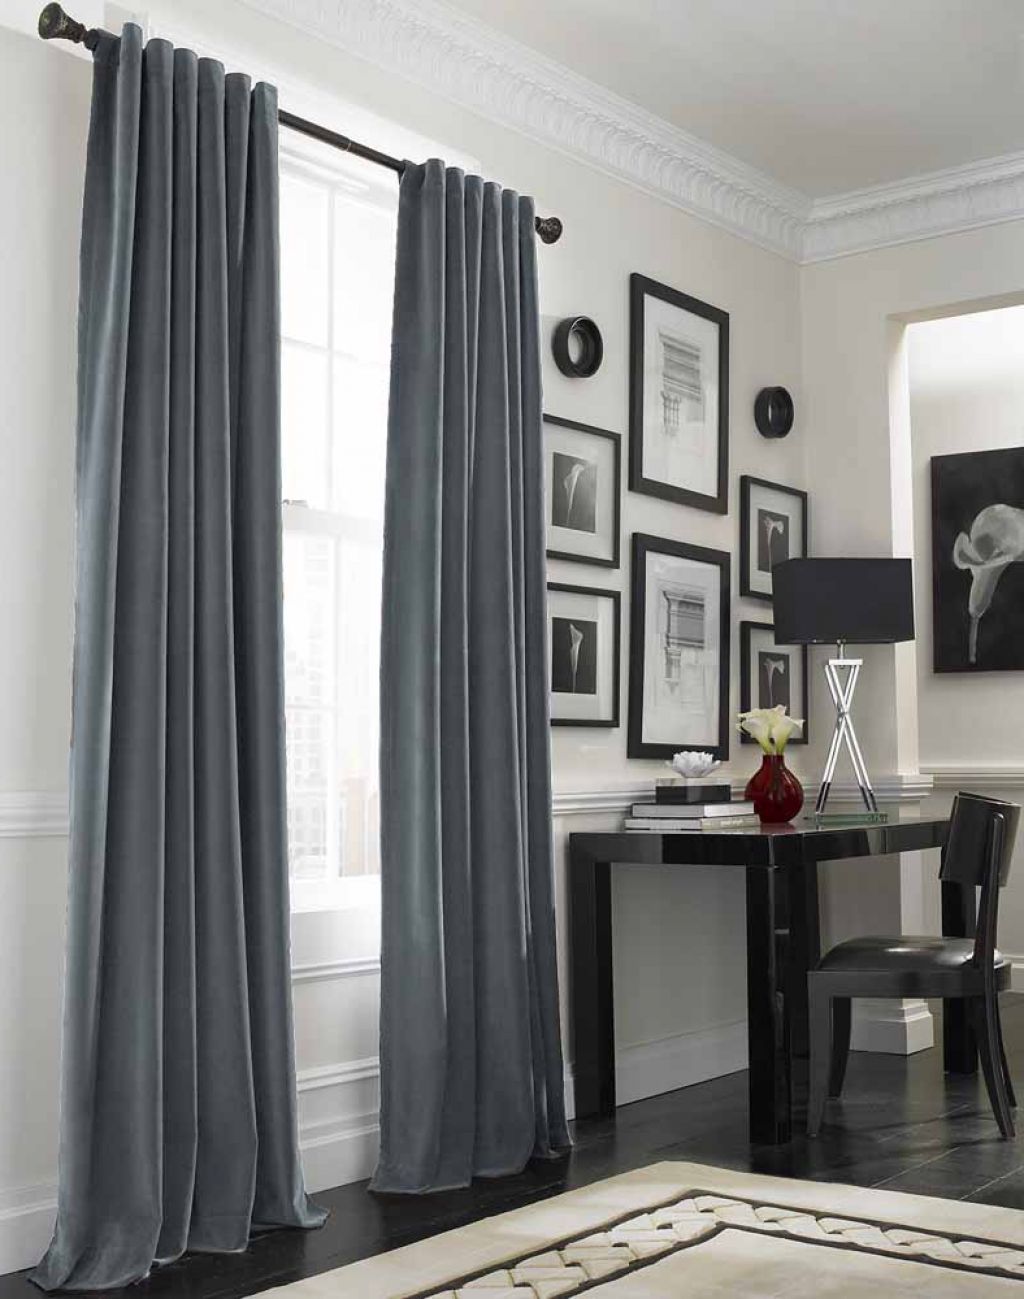 Grey curtains curtainsideasfornursery curtains ideas for nursery